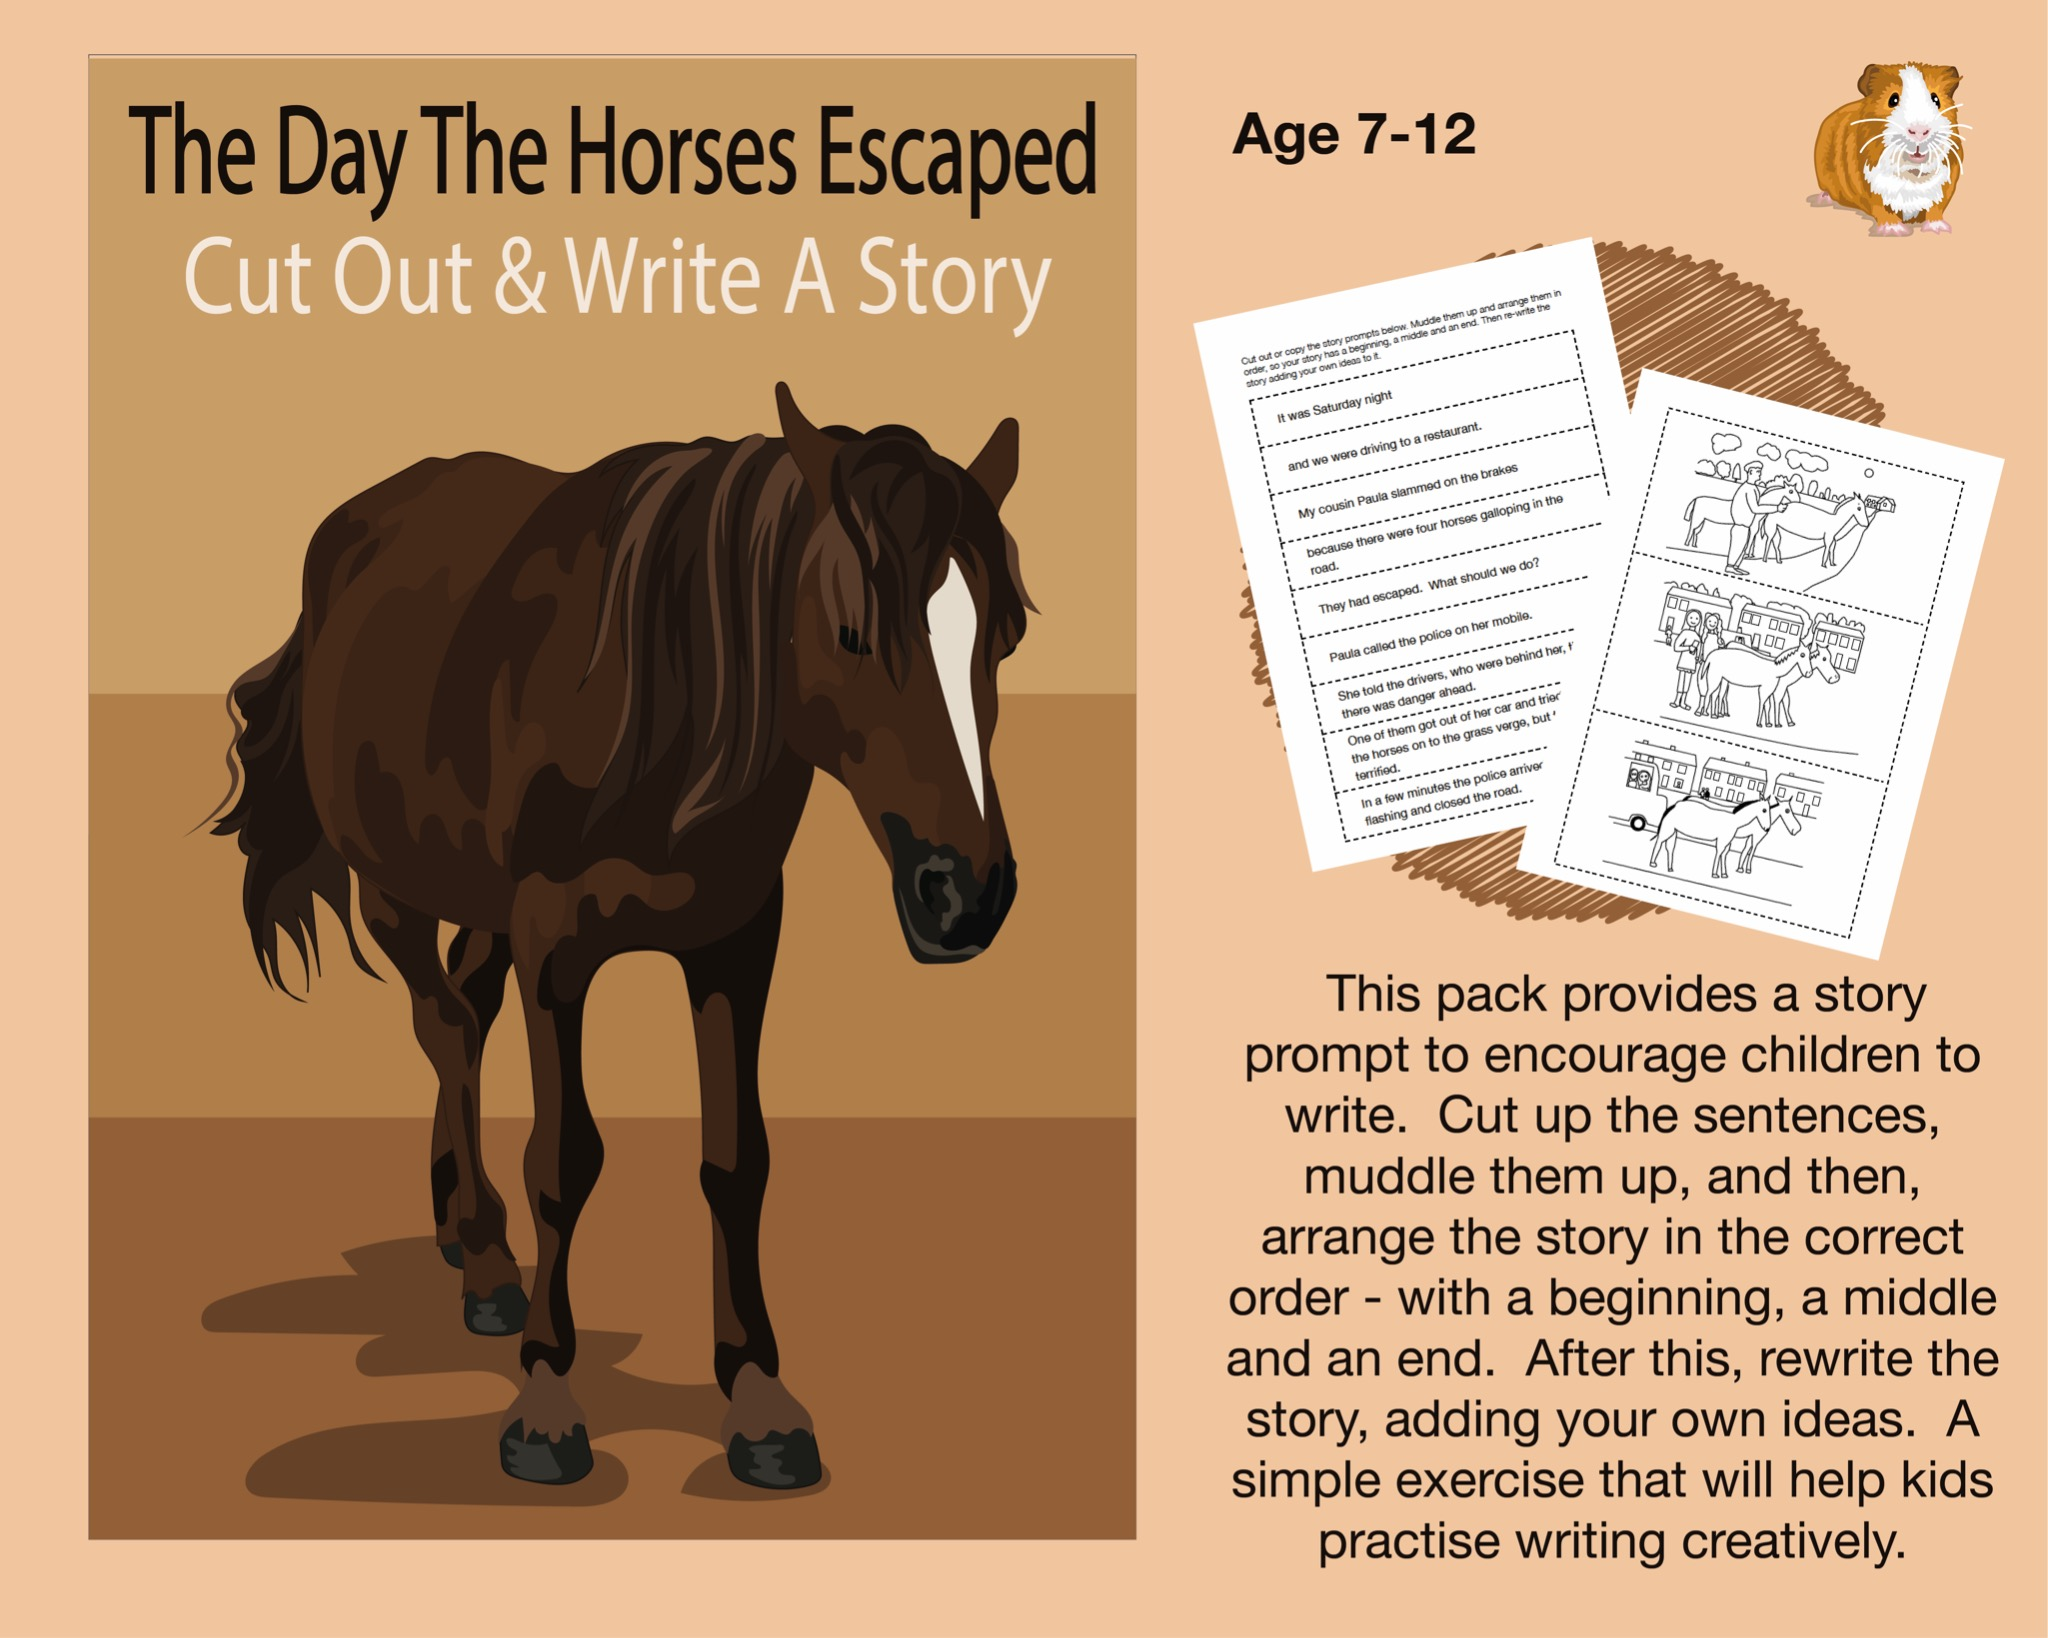 Cut Out And Write A Story Called 'The Day The Horses Escaped' (7-12 years)